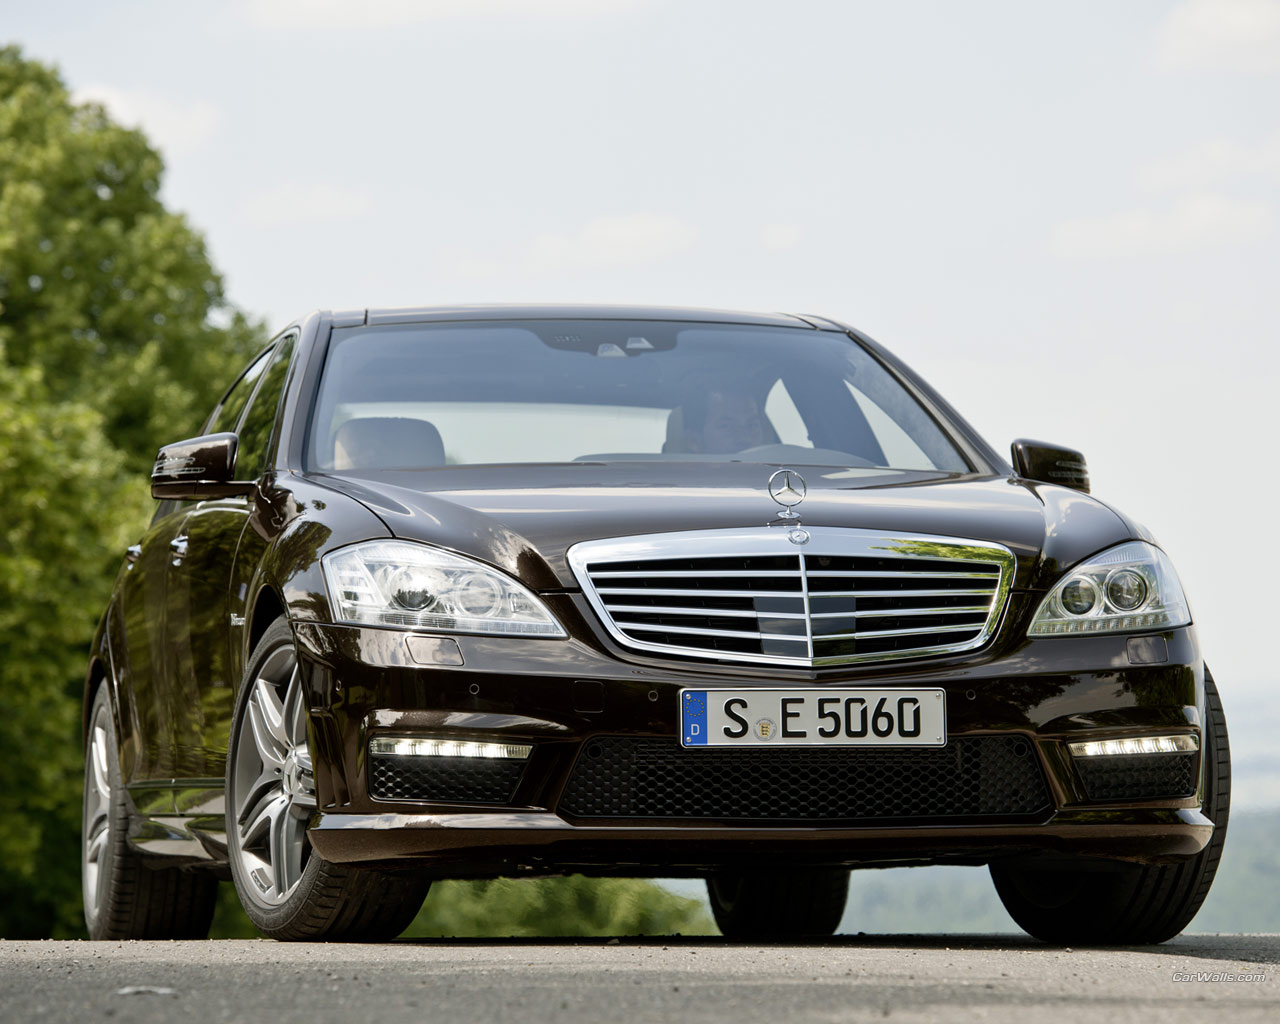 2010 mercedes benz s class pictures cargurus for 2010 mercedes benz s63 amg